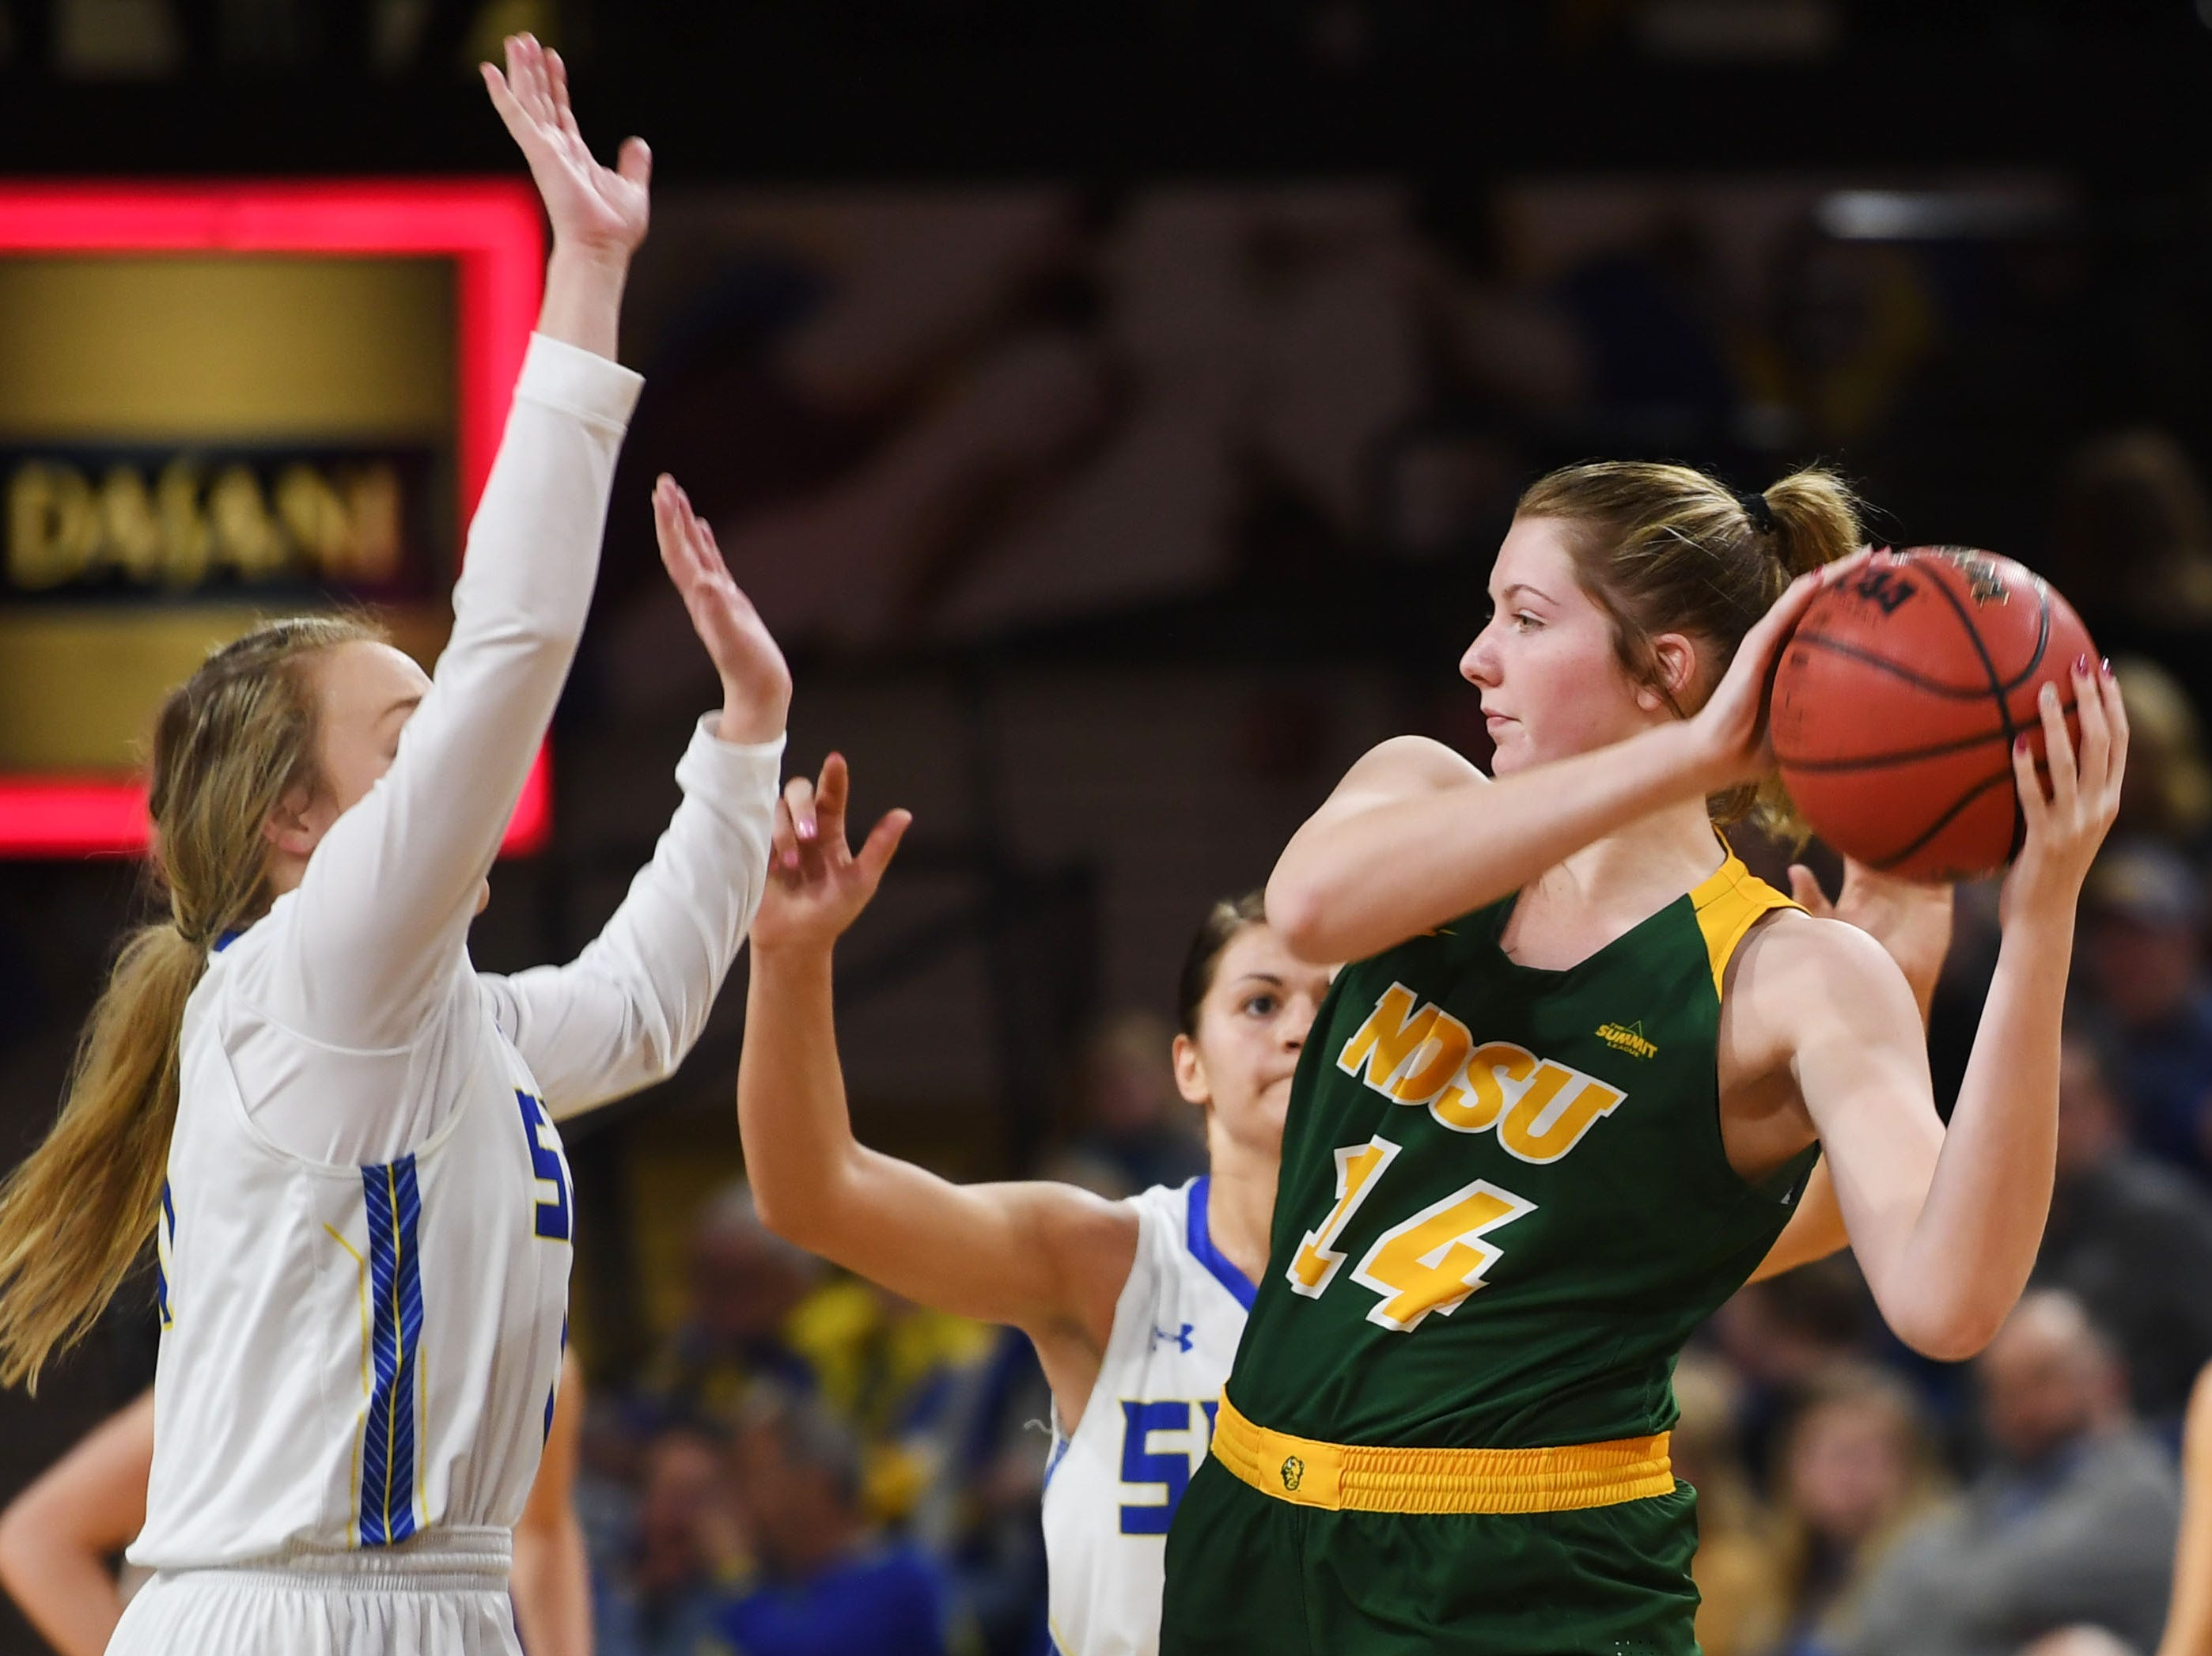 NDSU's Macey Kvilvang goes against SDSU defense during the game Wednesday, Jan. 23, at Frost Arena in Brookings.